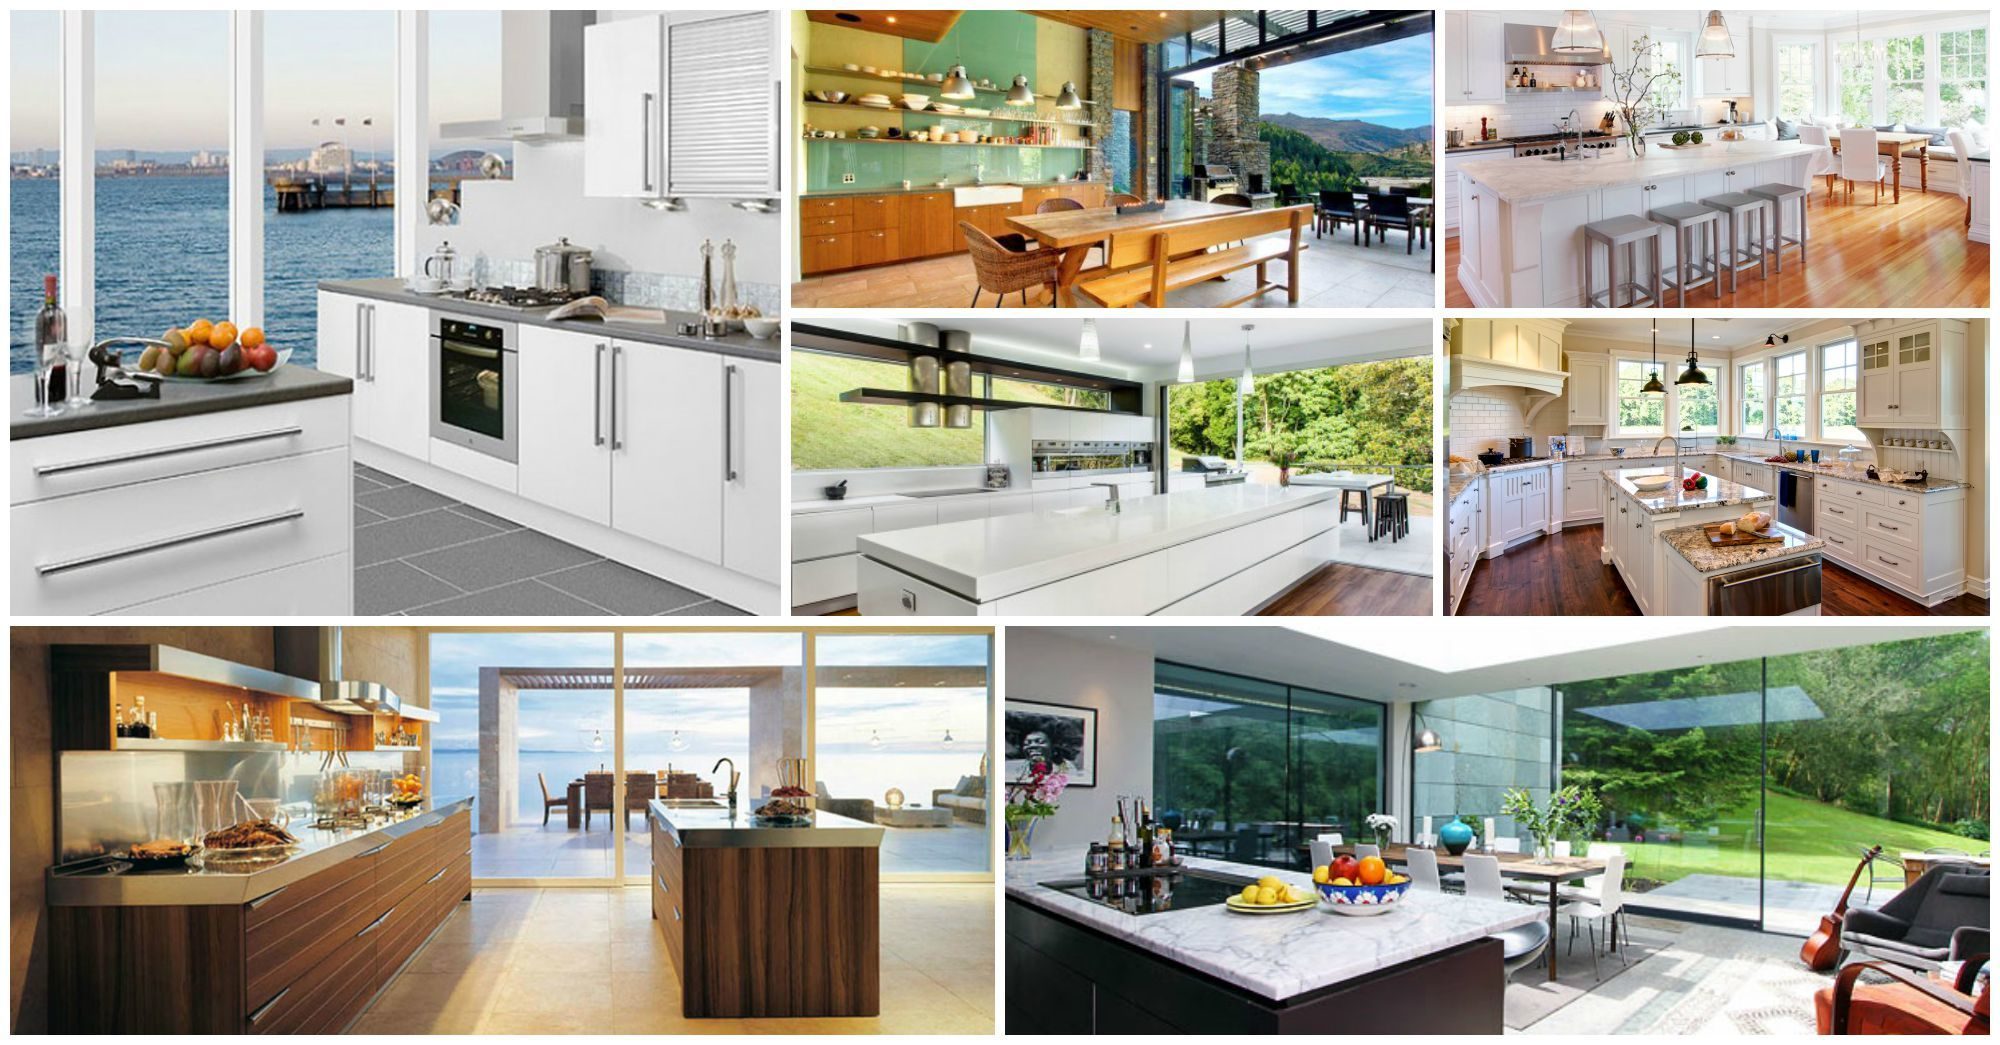 15 kitchen designs with astonishing views for View kitchens ideas